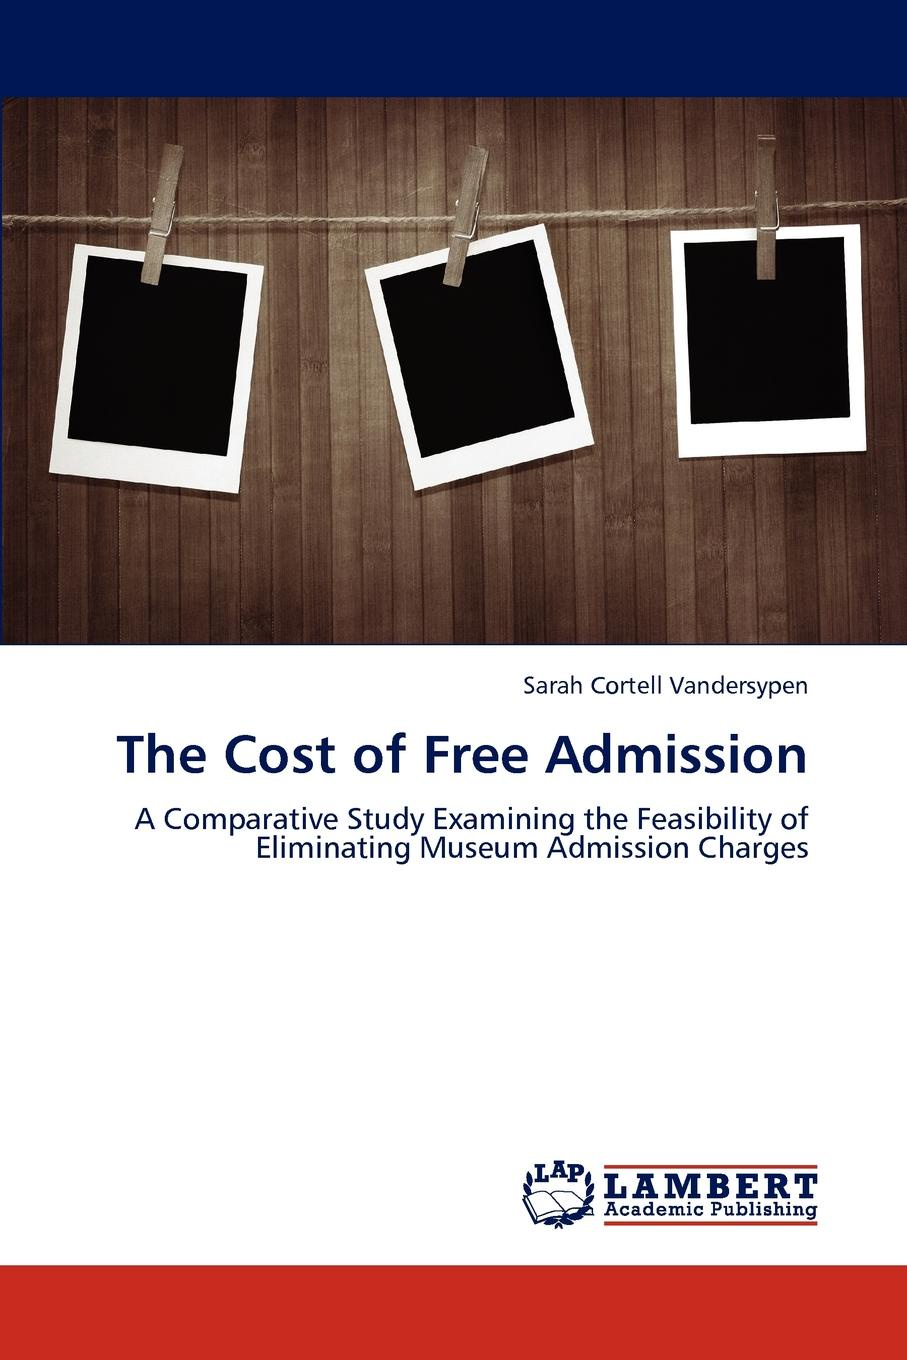 Sarah Cortell Vandersypen The Cost of Free Admission jennifer barrett museums and the public sphere